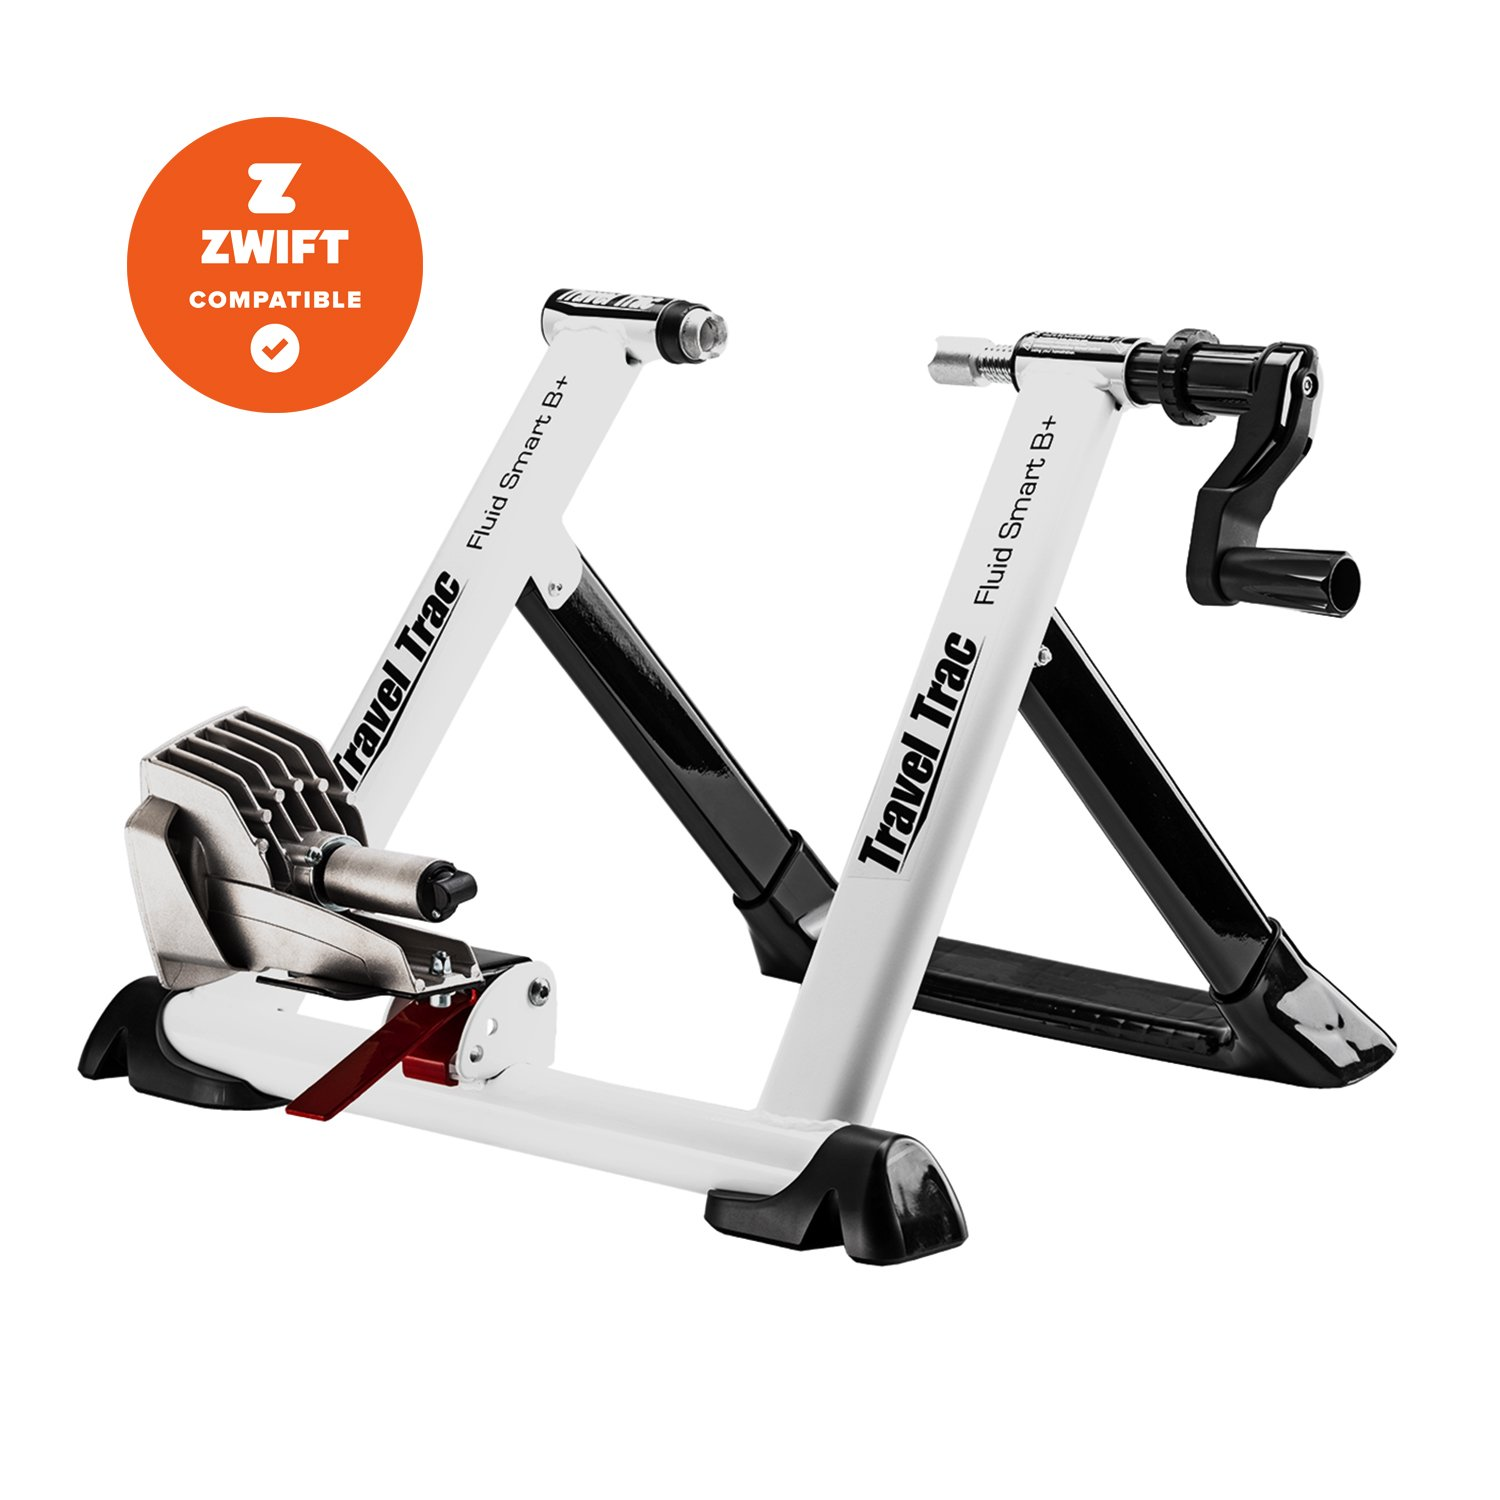 Travel Trac Fluid Smart Trainer by Travel Trac (Image #1)